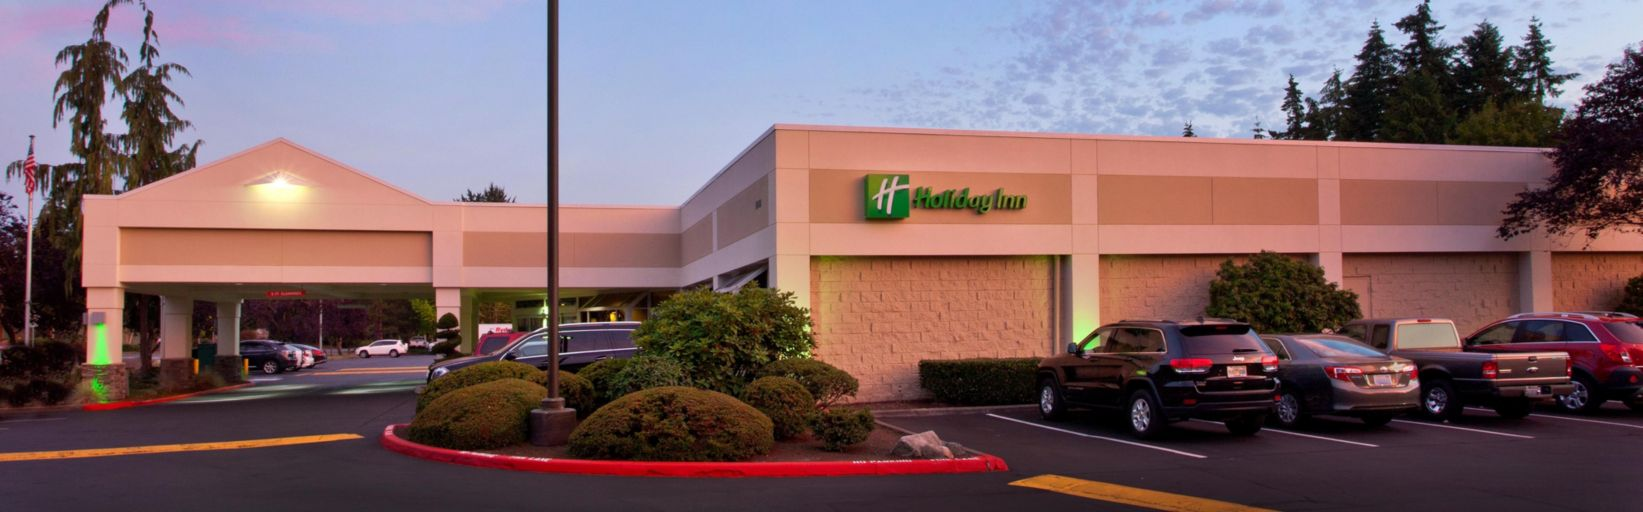 The Holiday Inn Seattle Issaquah Welcomes You